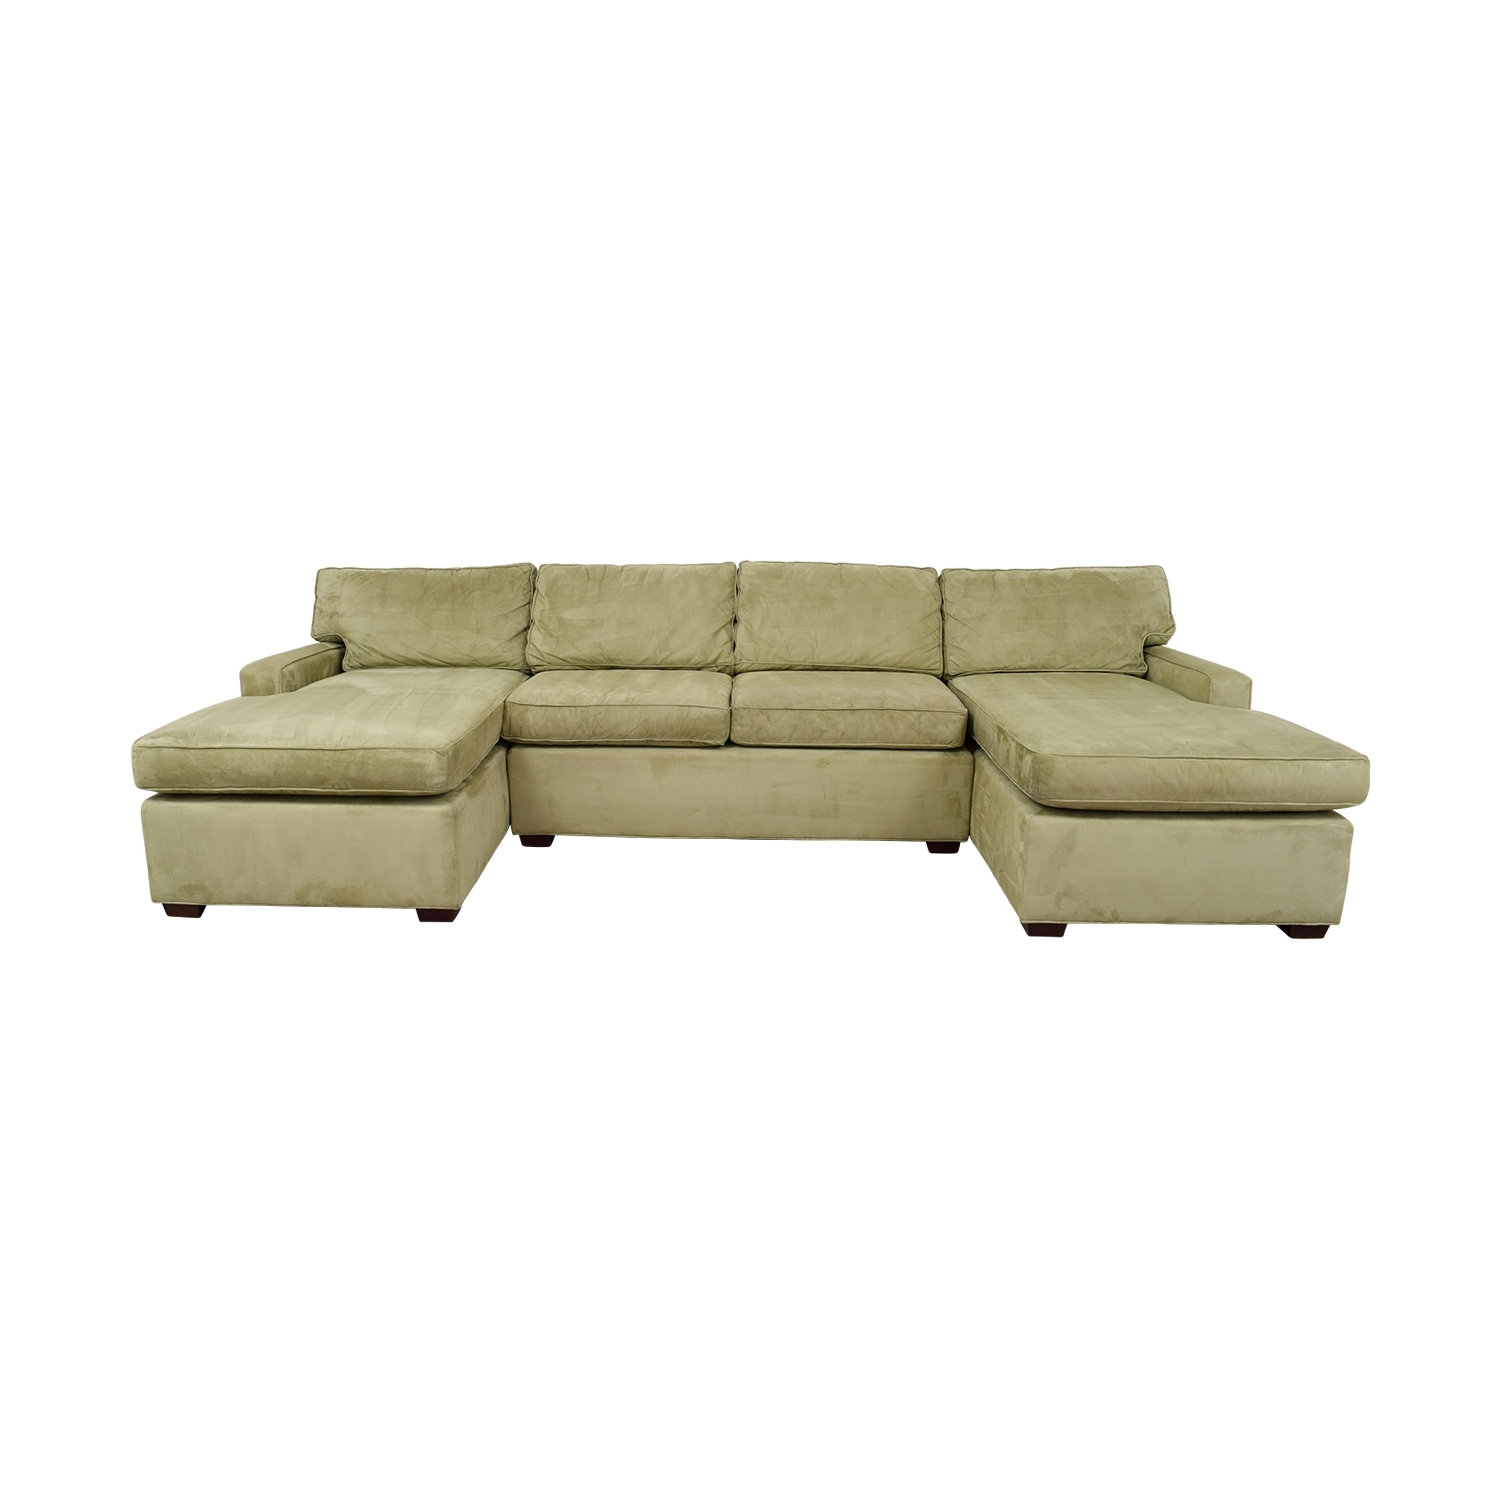 [%74% Off – Pottery Barn Pottery Barn Double Chaise Light Green Throughout Famous Pottery Barn Chaises|Pottery Barn Chaises In Most Recent 74% Off – Pottery Barn Pottery Barn Double Chaise Light Green|Trendy Pottery Barn Chaises Intended For 74% Off – Pottery Barn Pottery Barn Double Chaise Light Green|Most Current 74% Off – Pottery Barn Pottery Barn Double Chaise Light Green Pertaining To Pottery Barn Chaises%] (View 2 of 15)